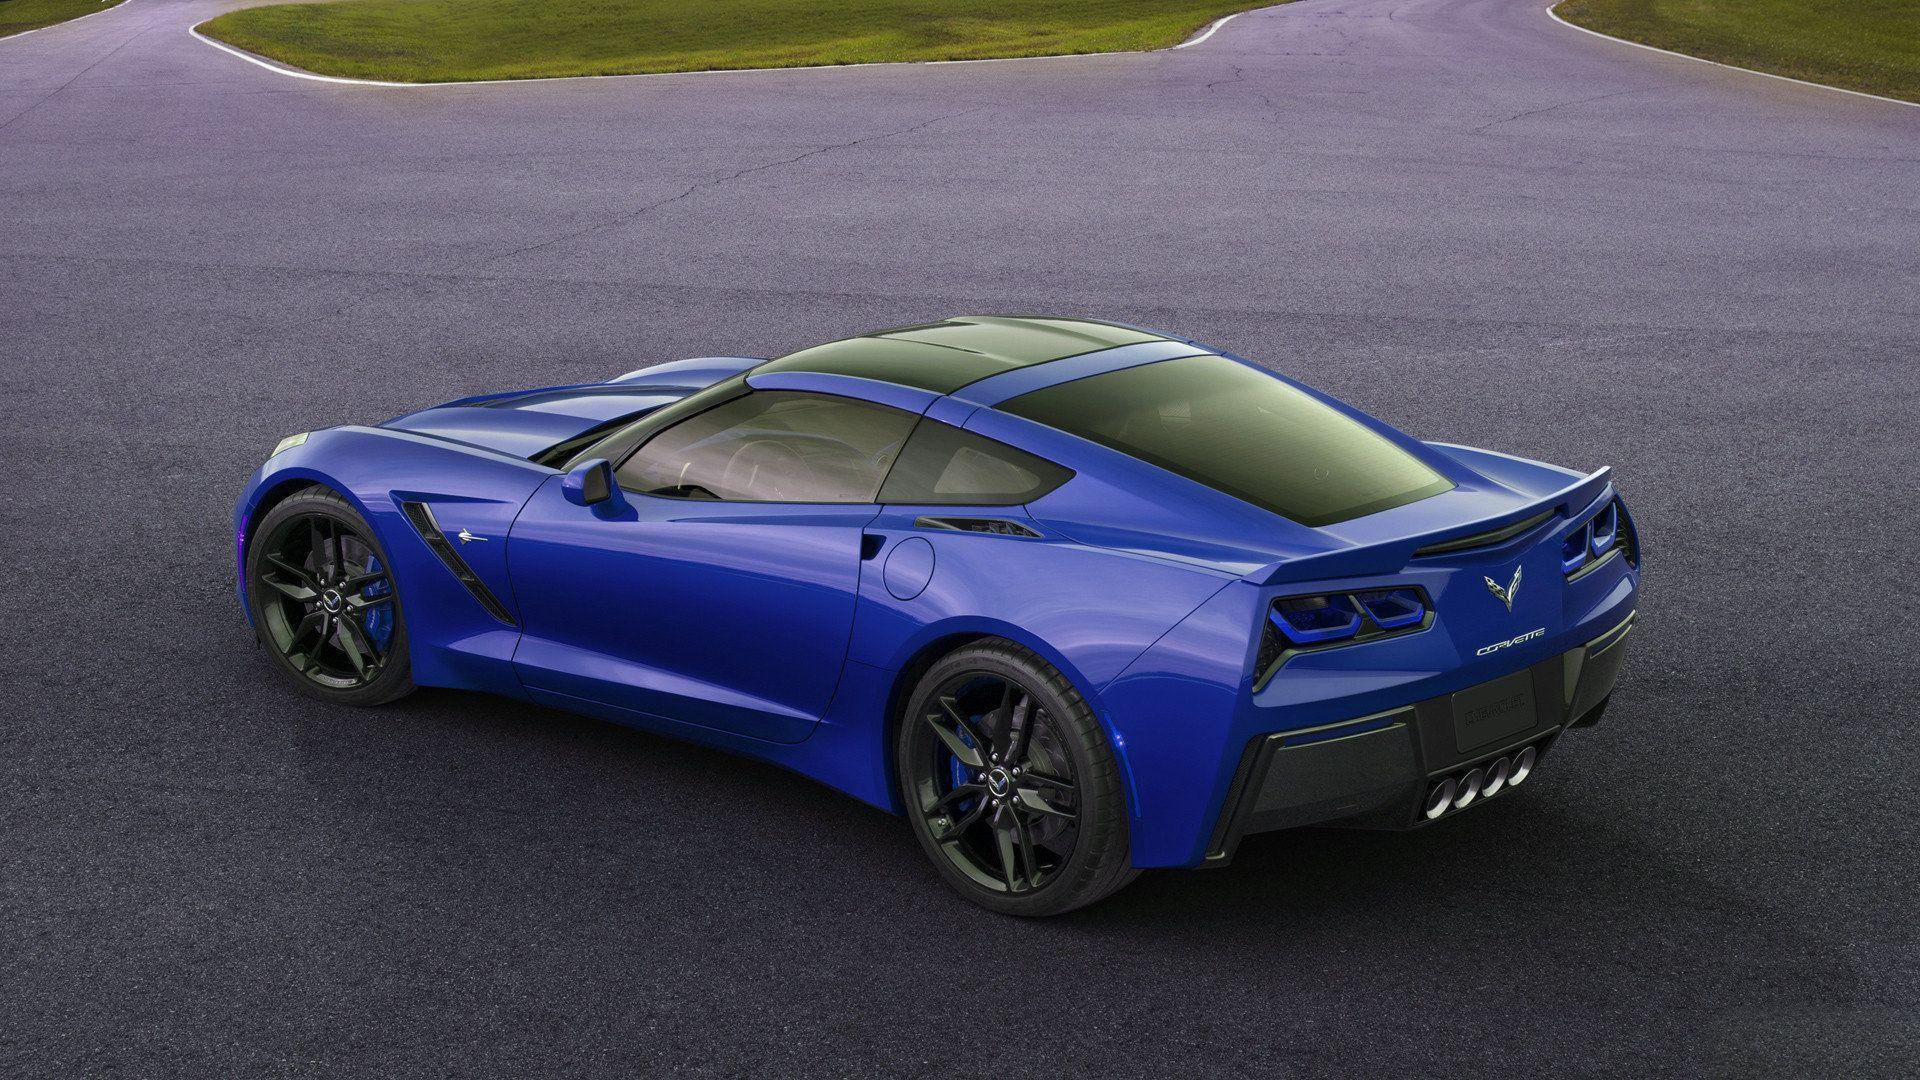 Corvette Stingray Wallpapers Wallpaper Cave